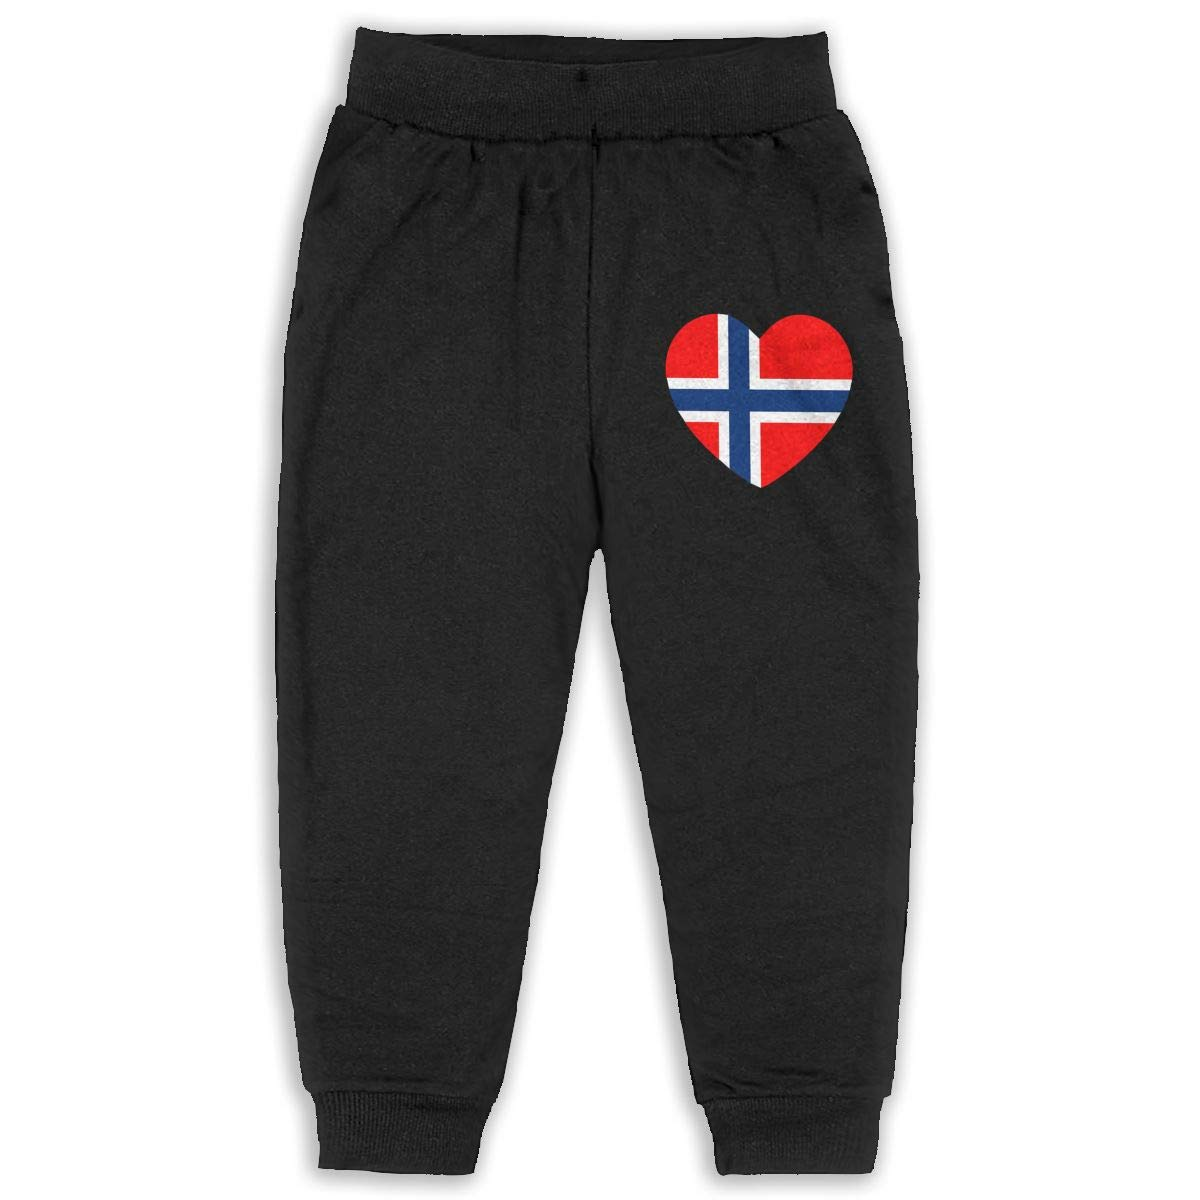 EASON-G Kids Joggers Norway Flag Heart Fashion Sweatpants 2T 6T